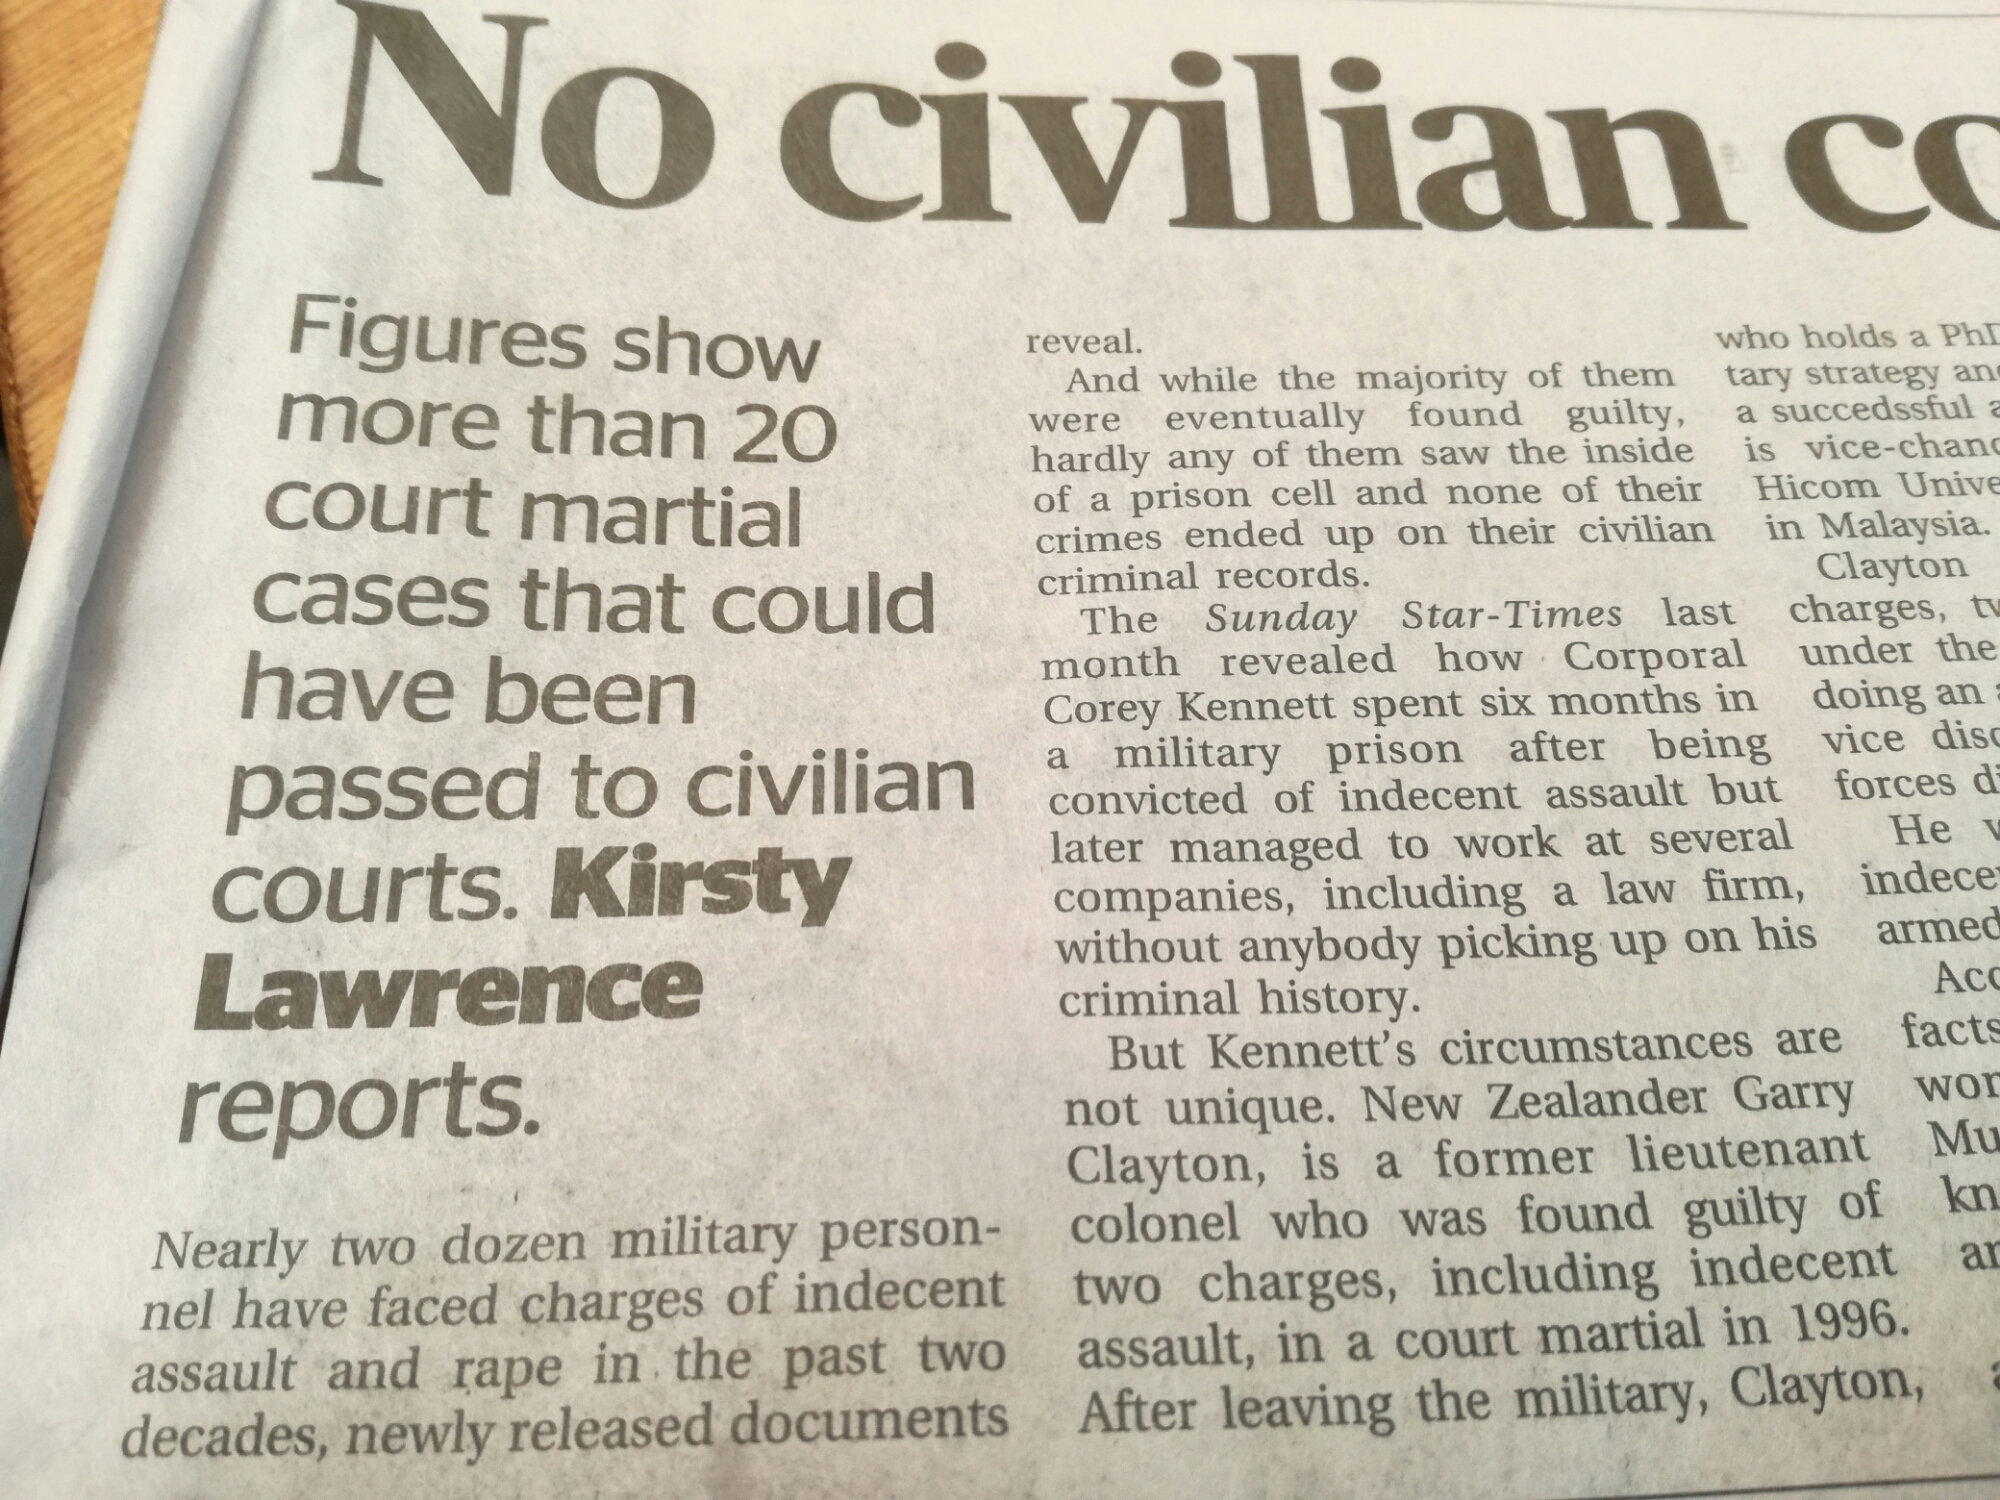 Oz military refers sex assaults to state police forces and courts